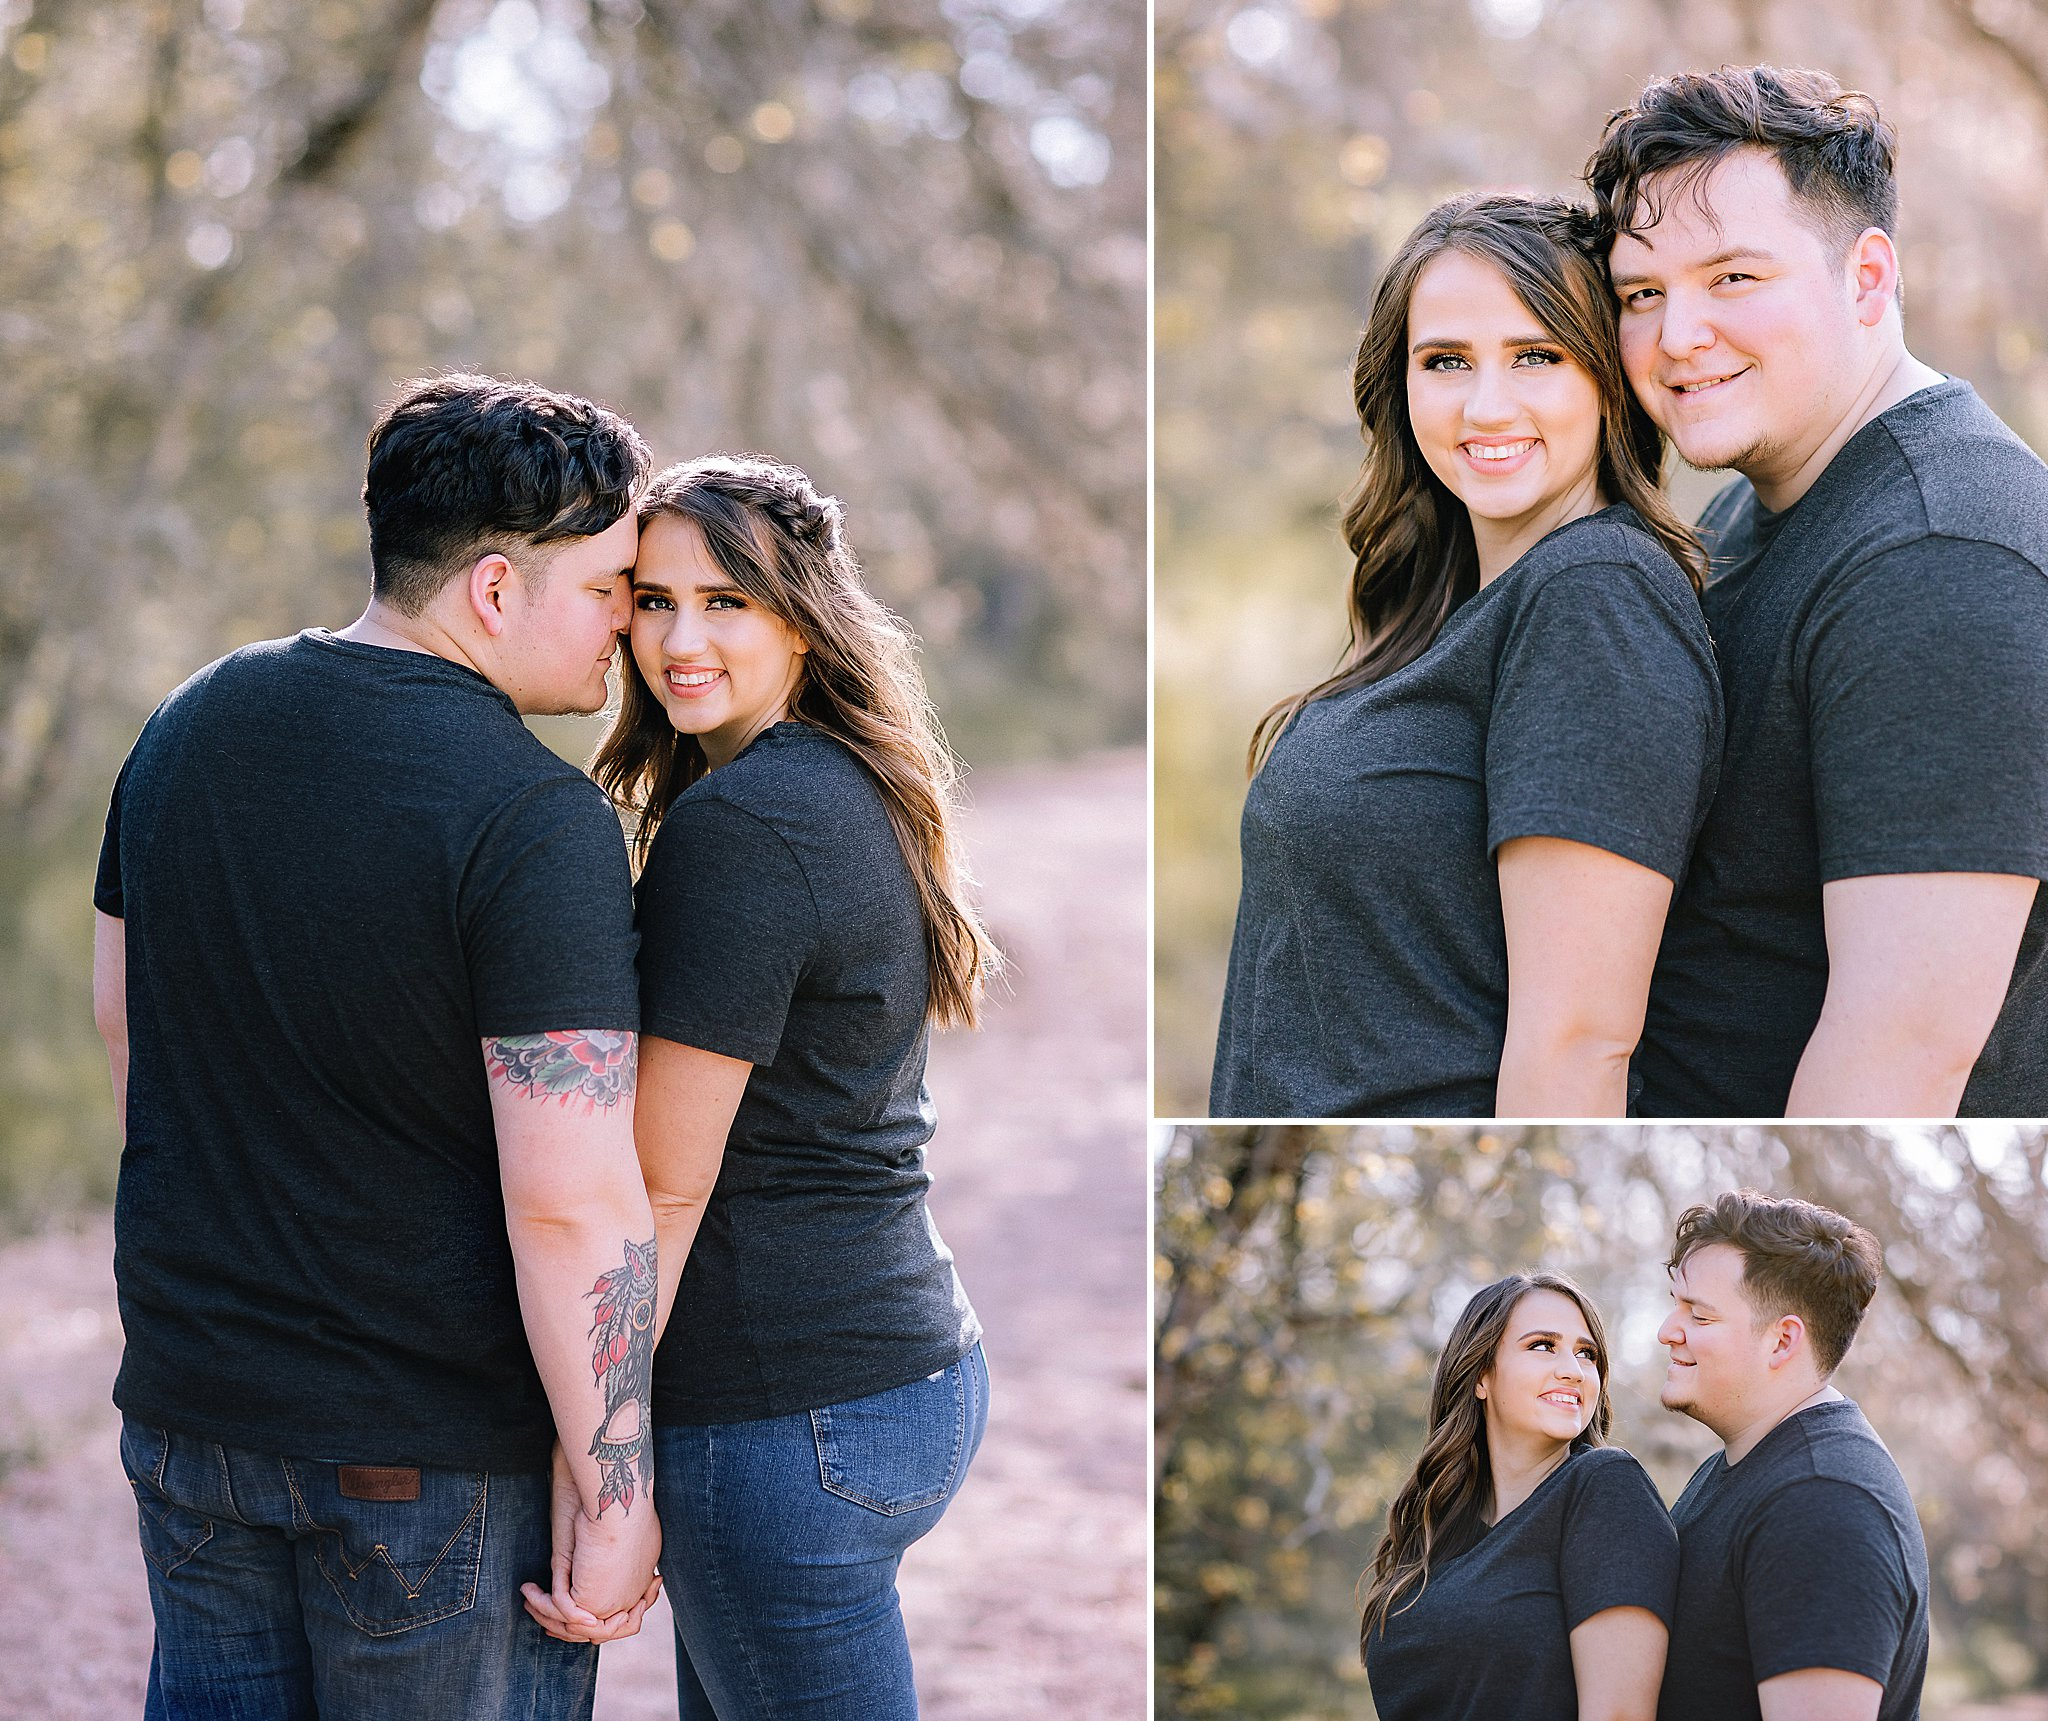 Carly-Barton-Photography-Fredericksburg-Texas-Engagement-Session-Enchanted-Rock-Photos_0018.jpg